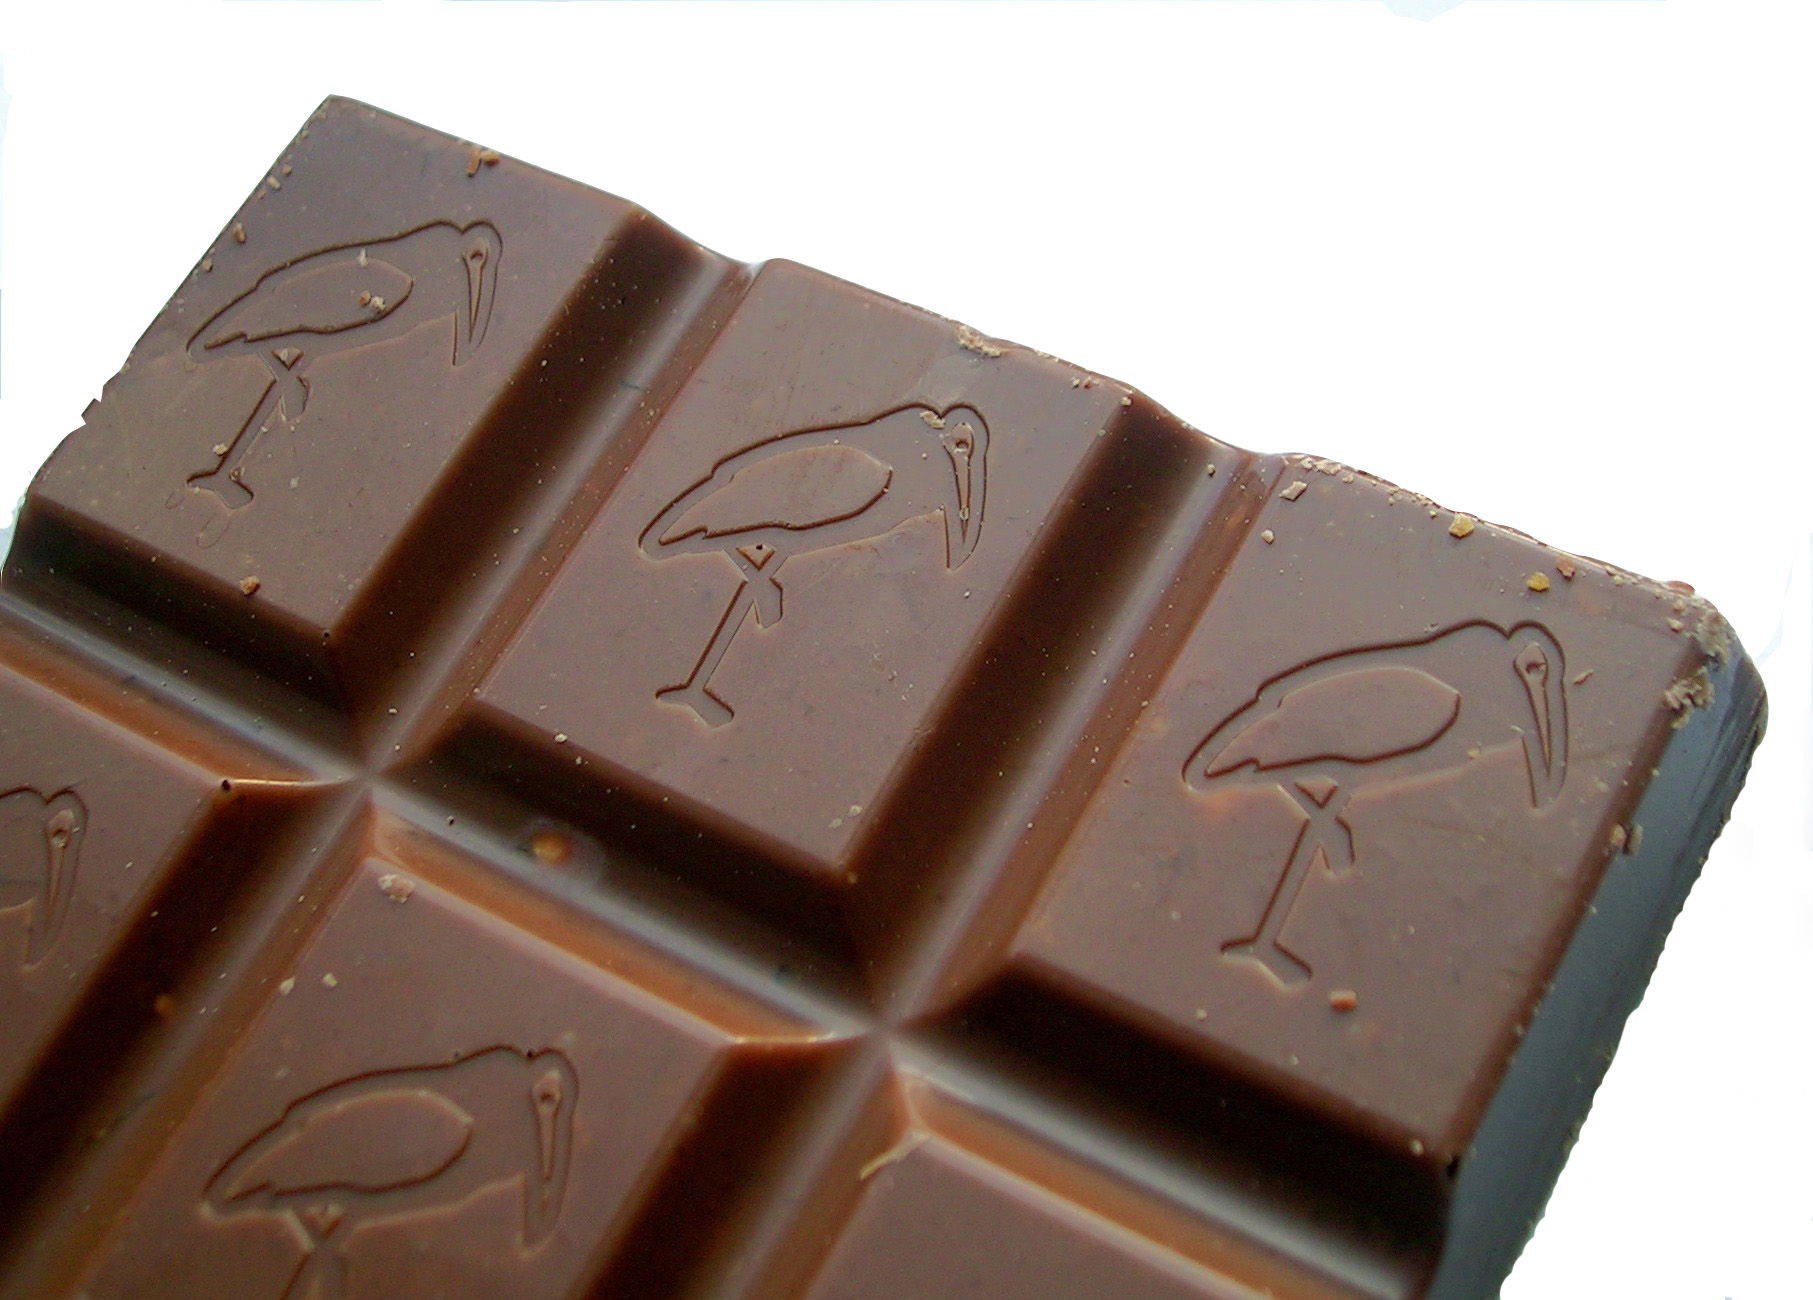 Worksheet History Of Chocolate Bars filemarabouchocolate jpg wikimedia commons jpg